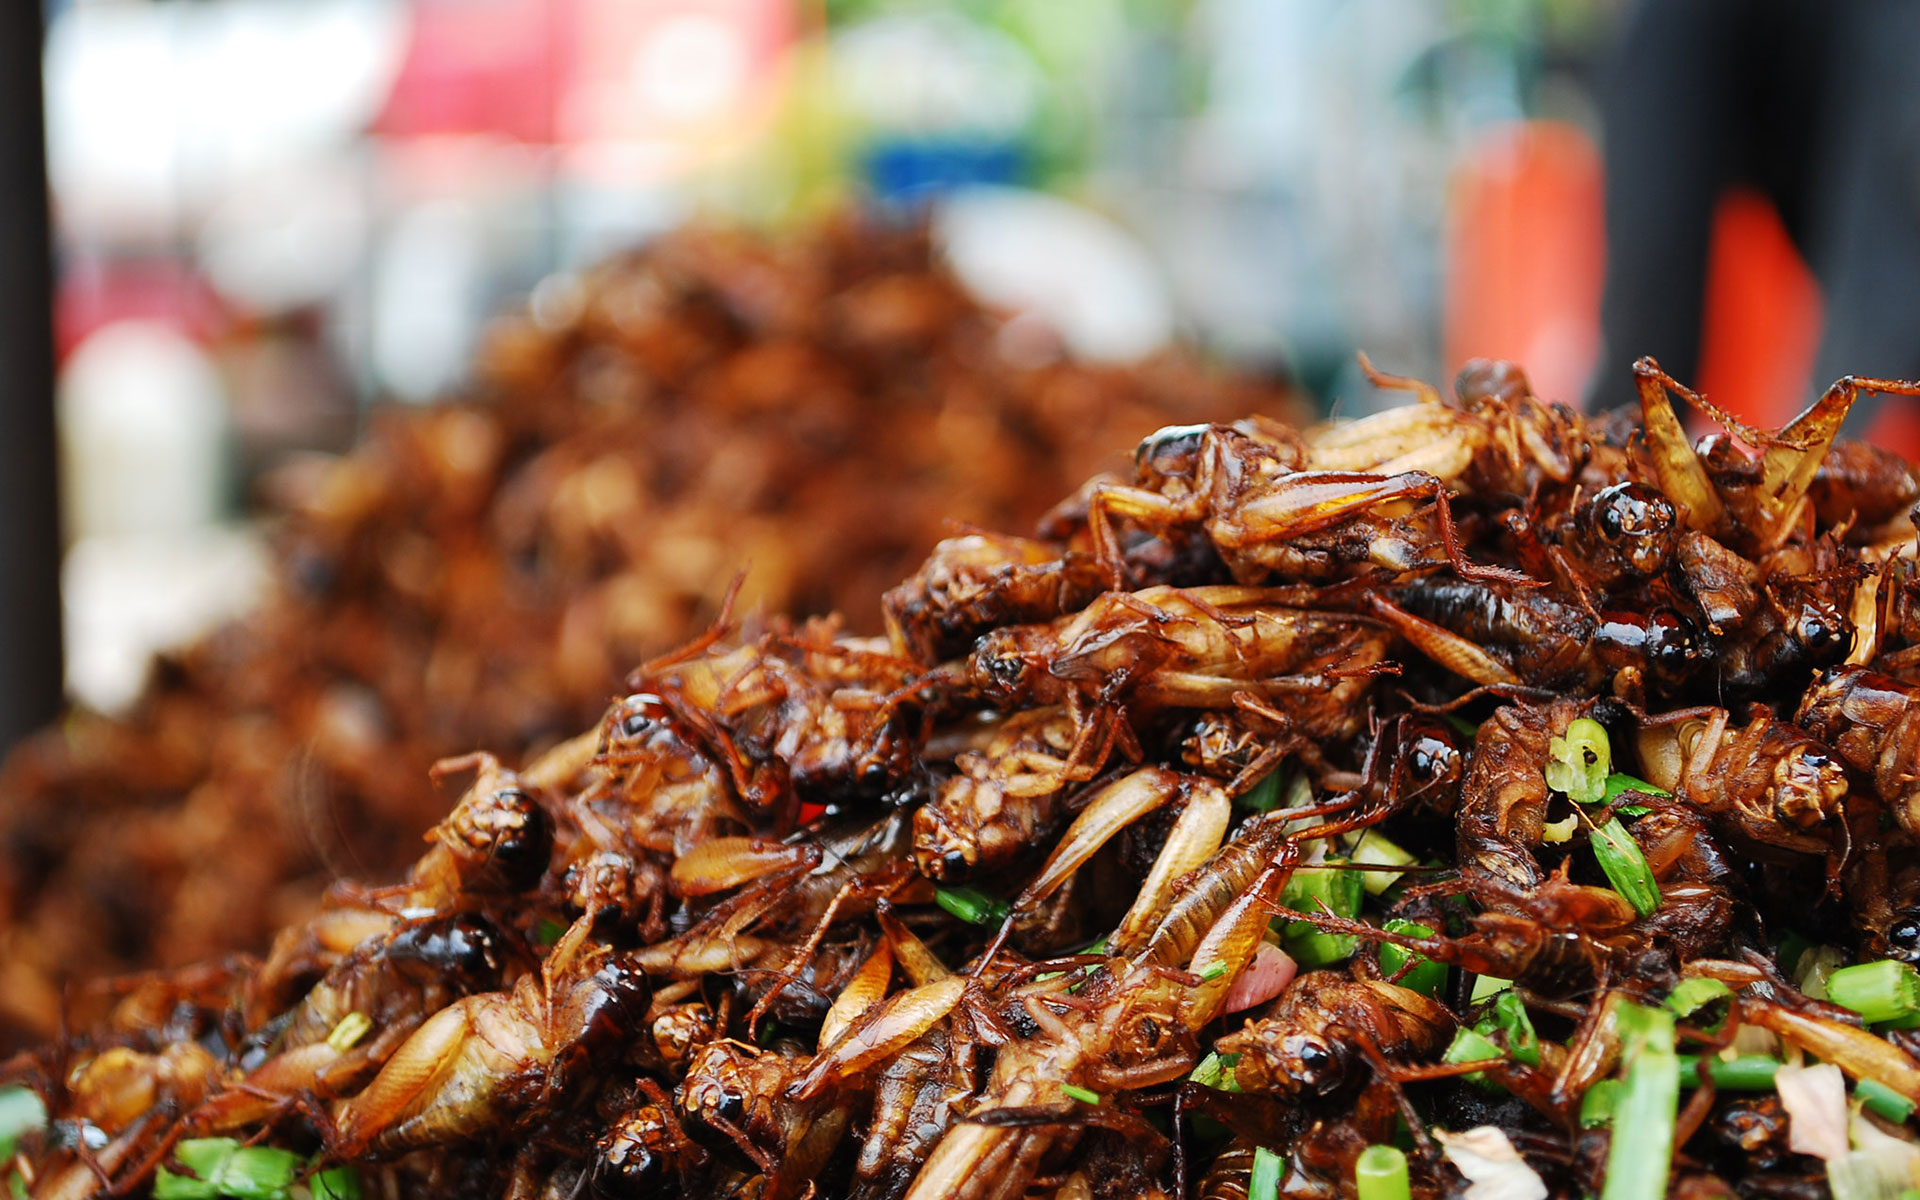 Fried Cricket mandalay